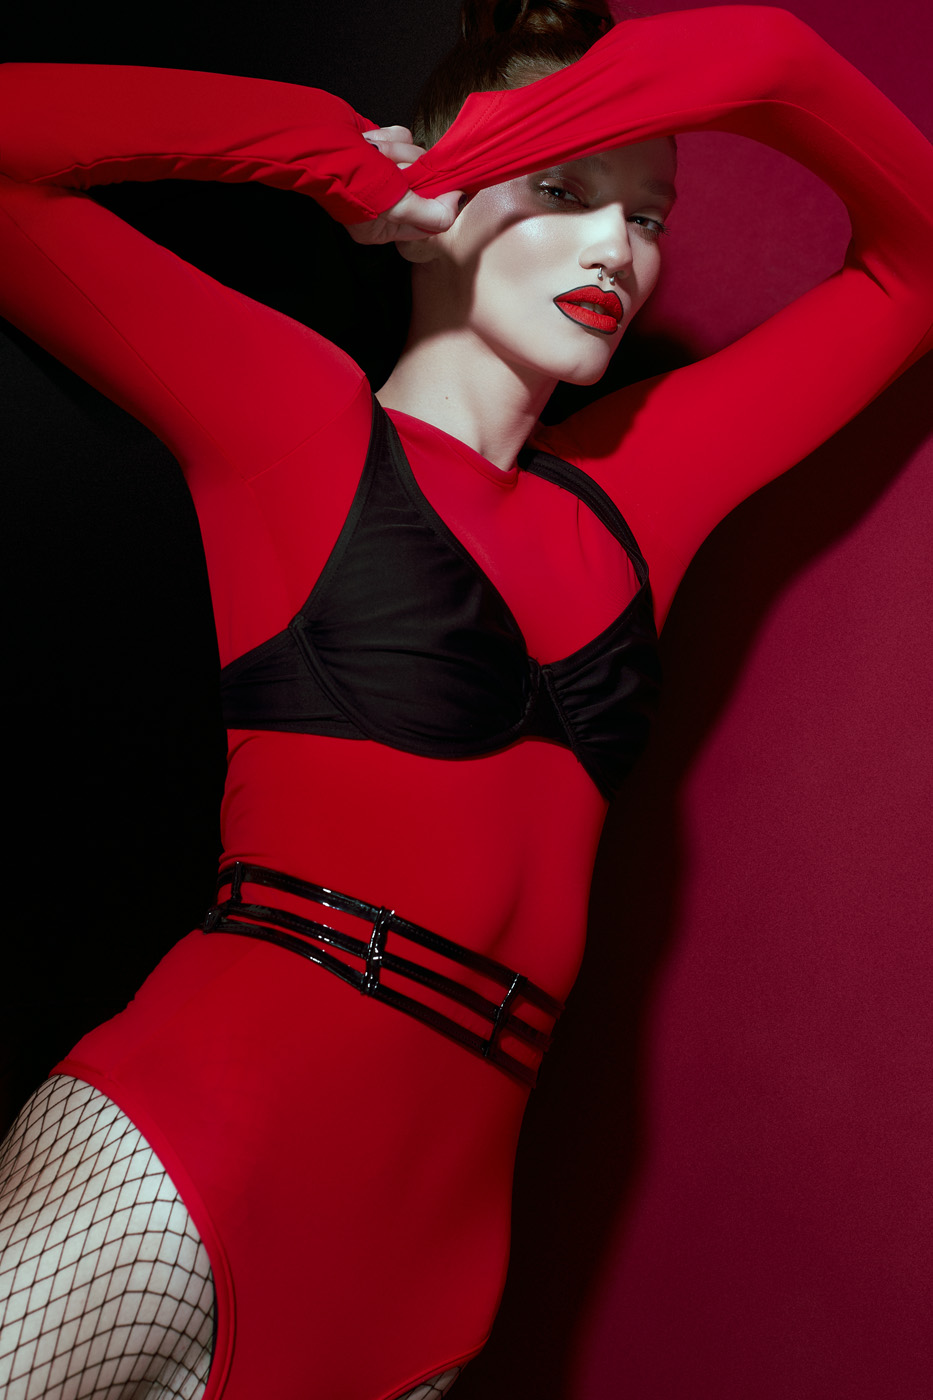 begudd magazine erotic latex fishnet editorial fashion cristina visterneanu daniel ilinca